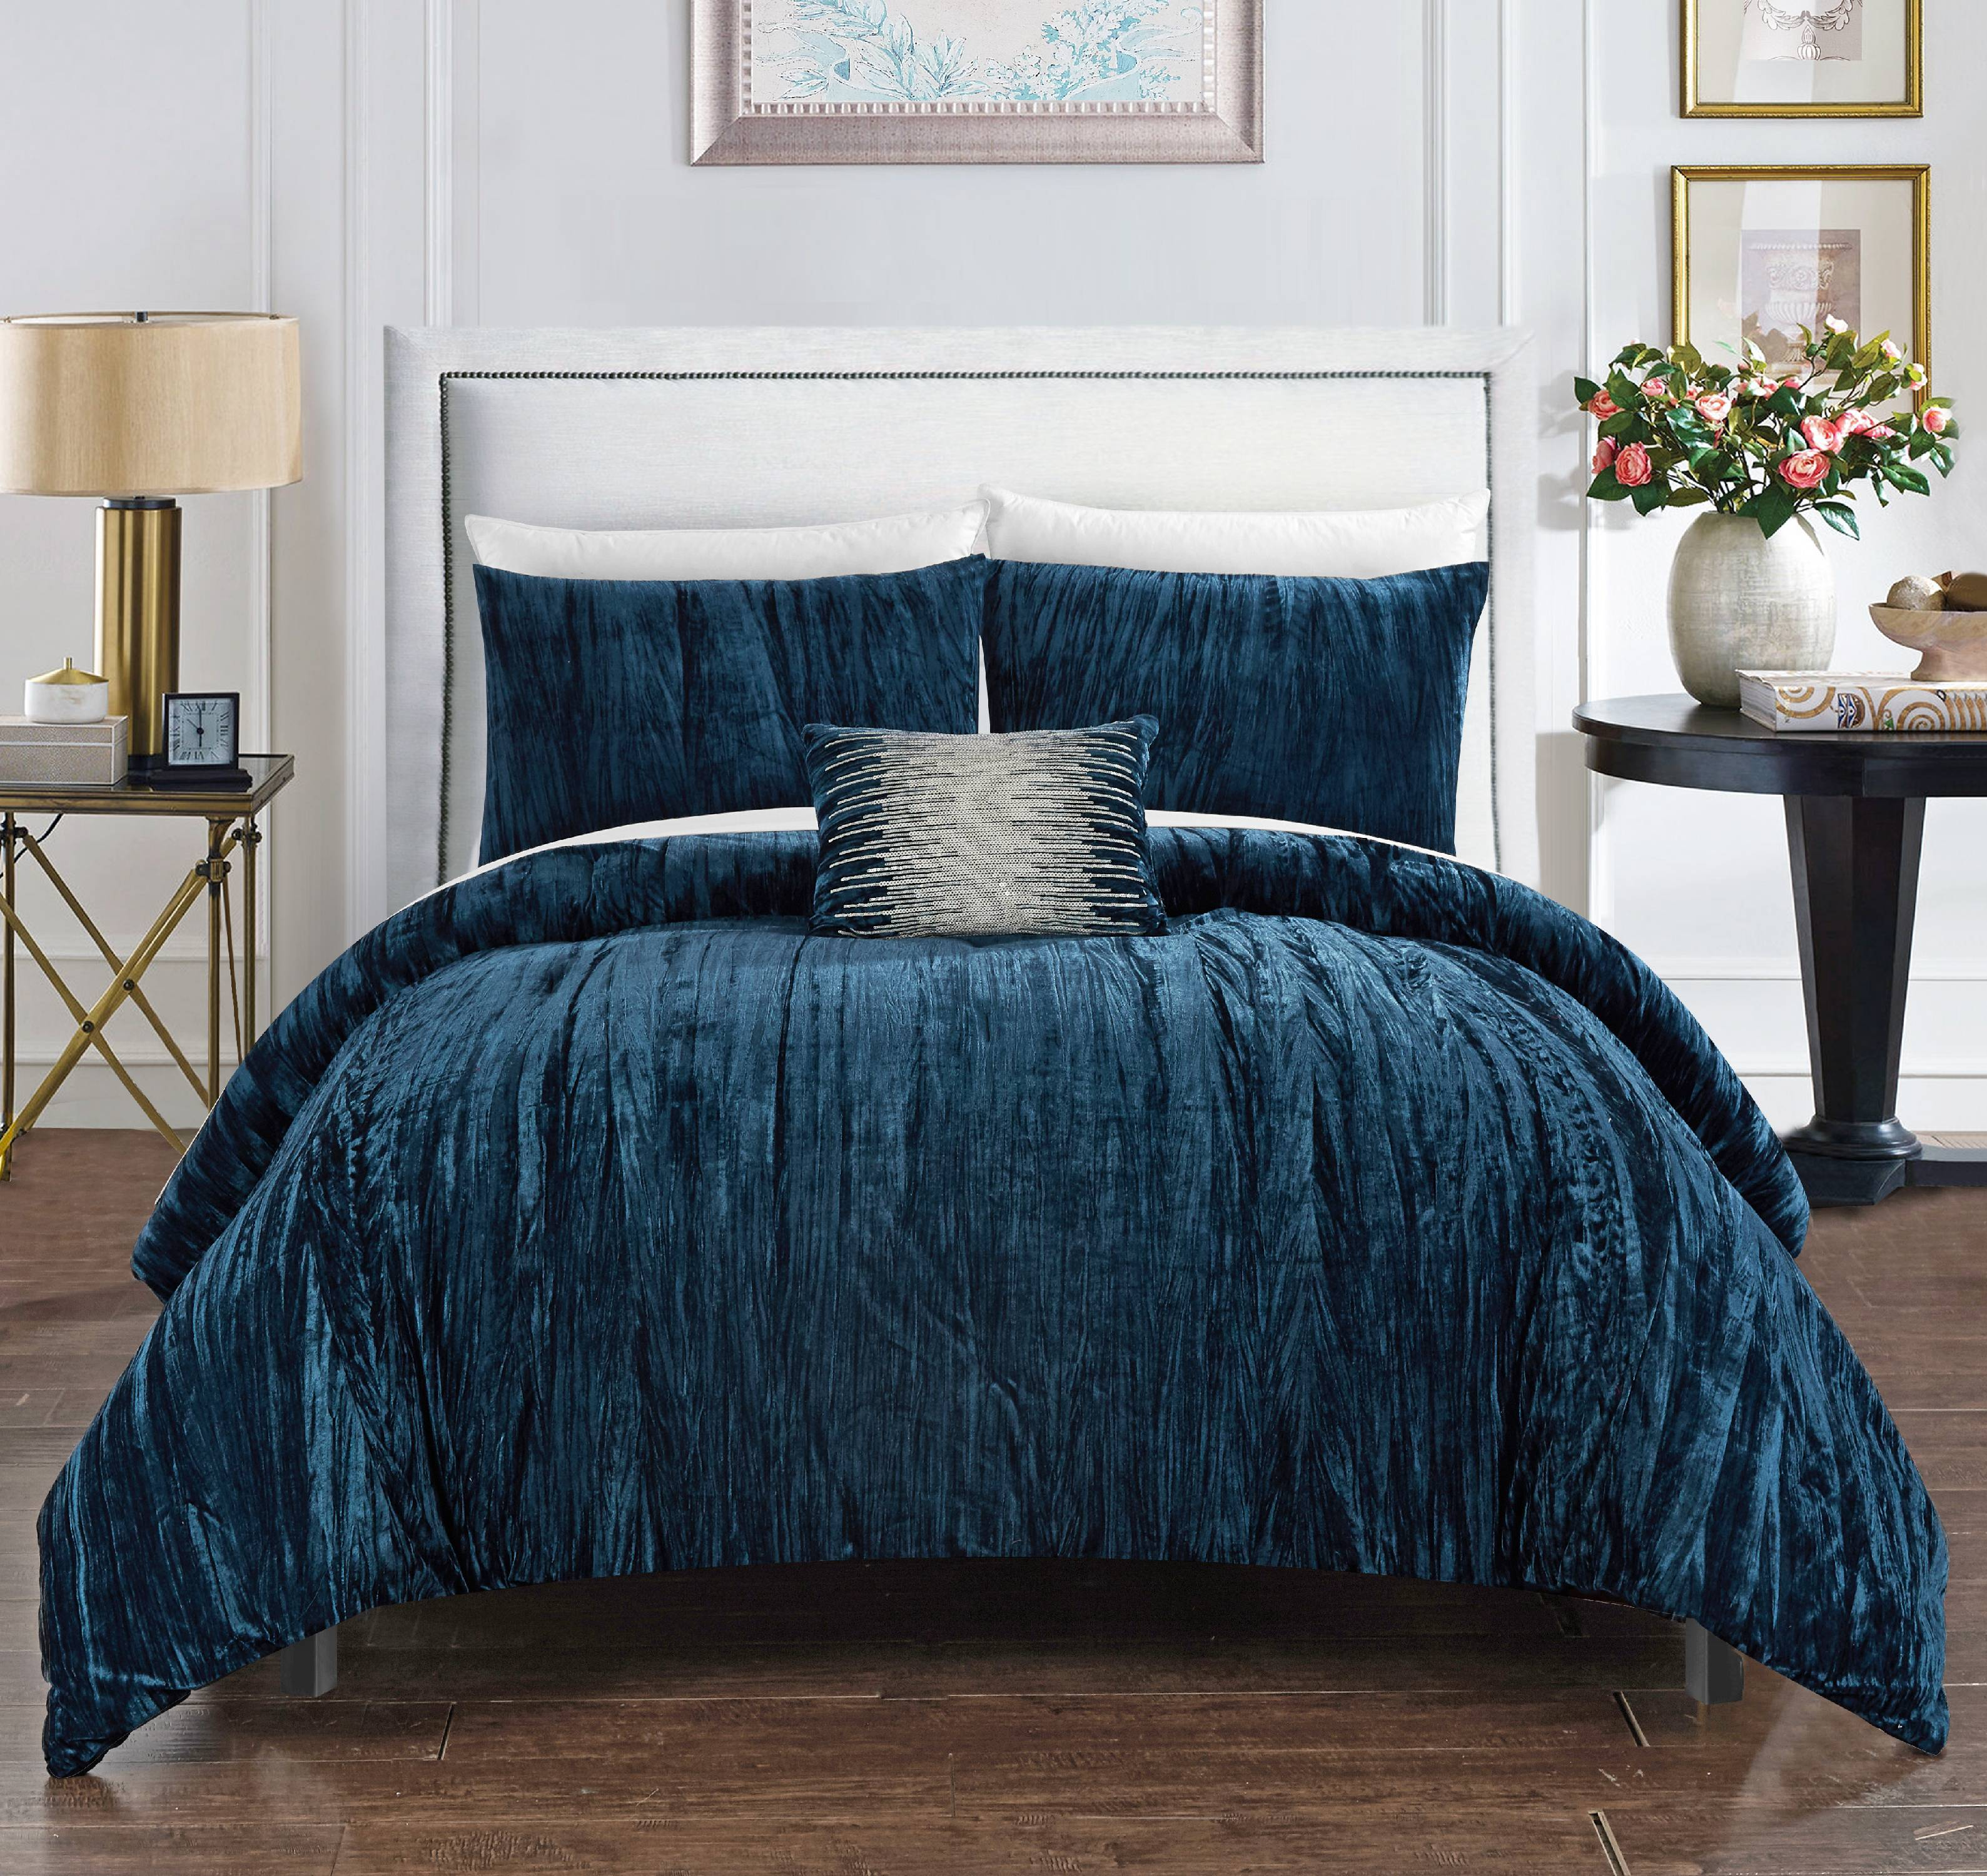 Chic Home Kerk 4 Piece Comforter Set Crinkle Crushed Velvet Bedding